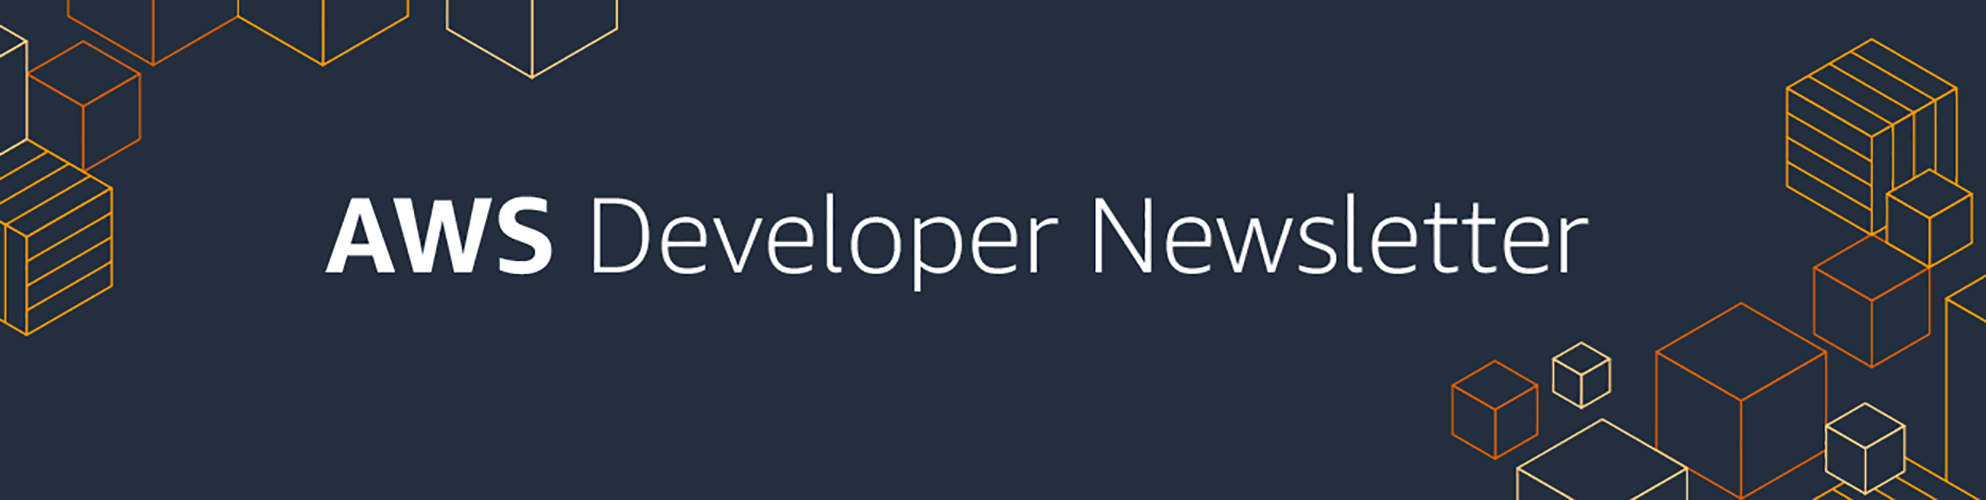 Developer-Center-Newsletter